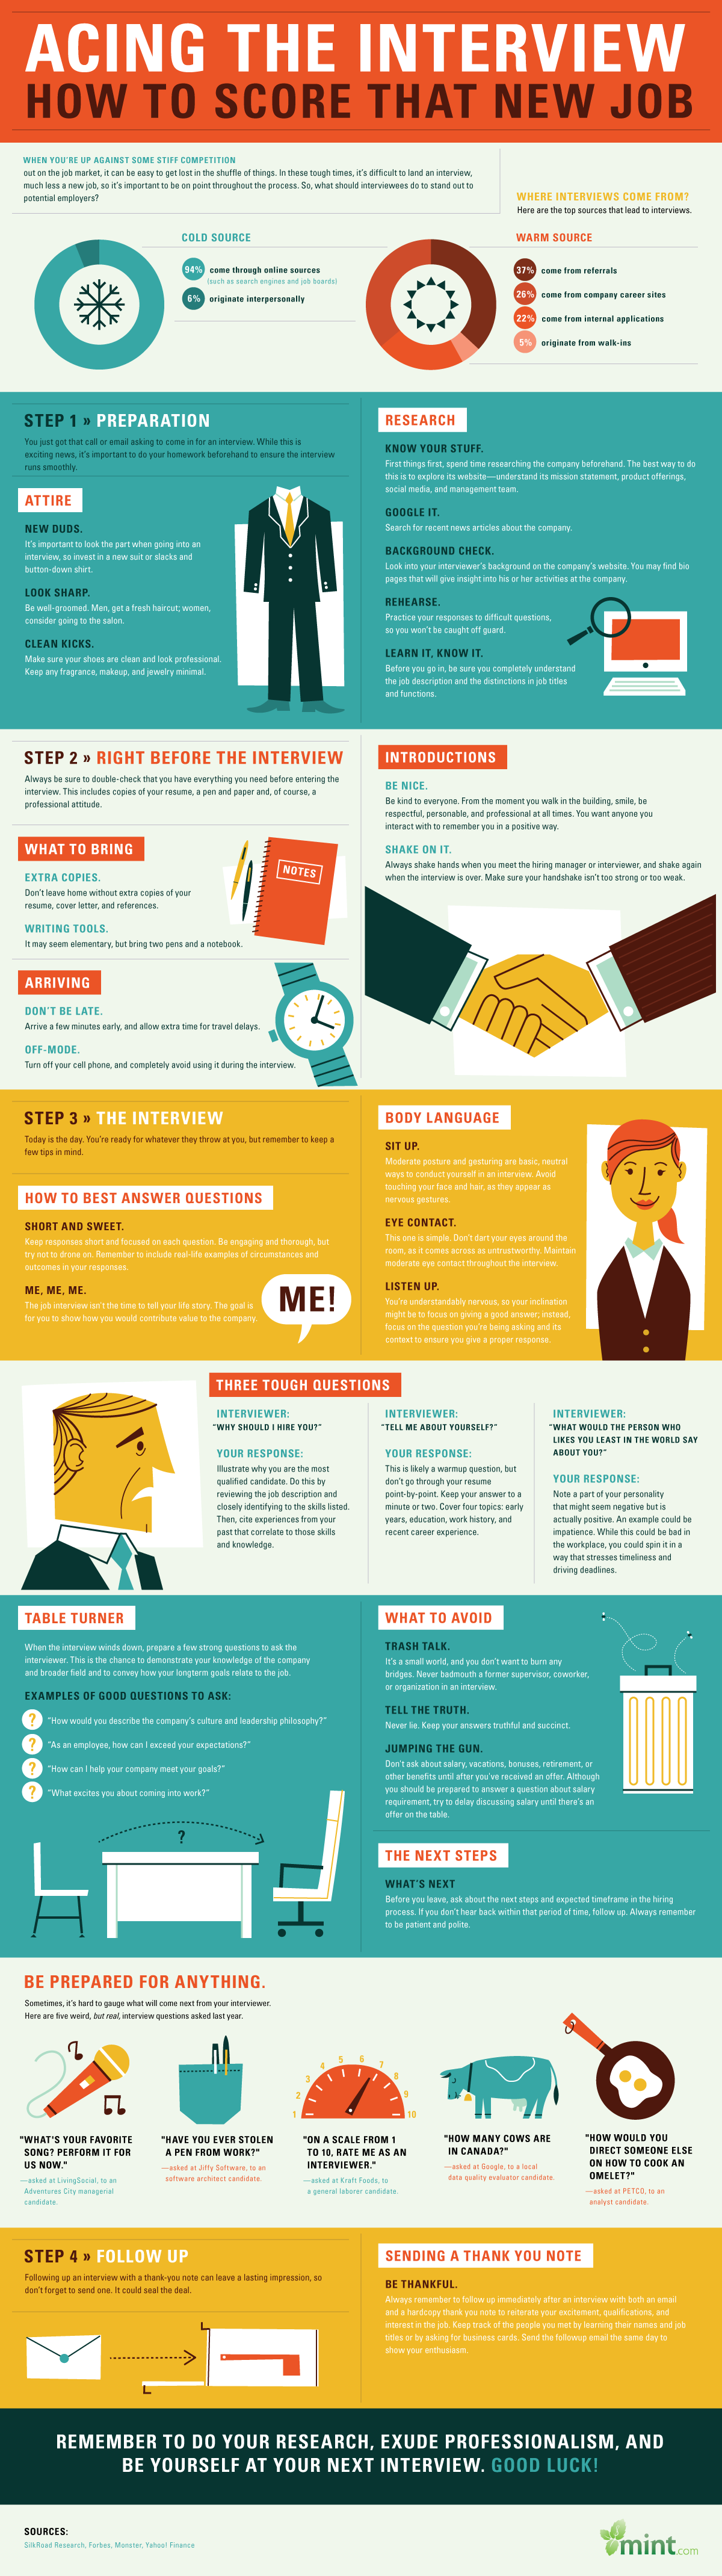 Acing the Interview:  How to Score That New Job